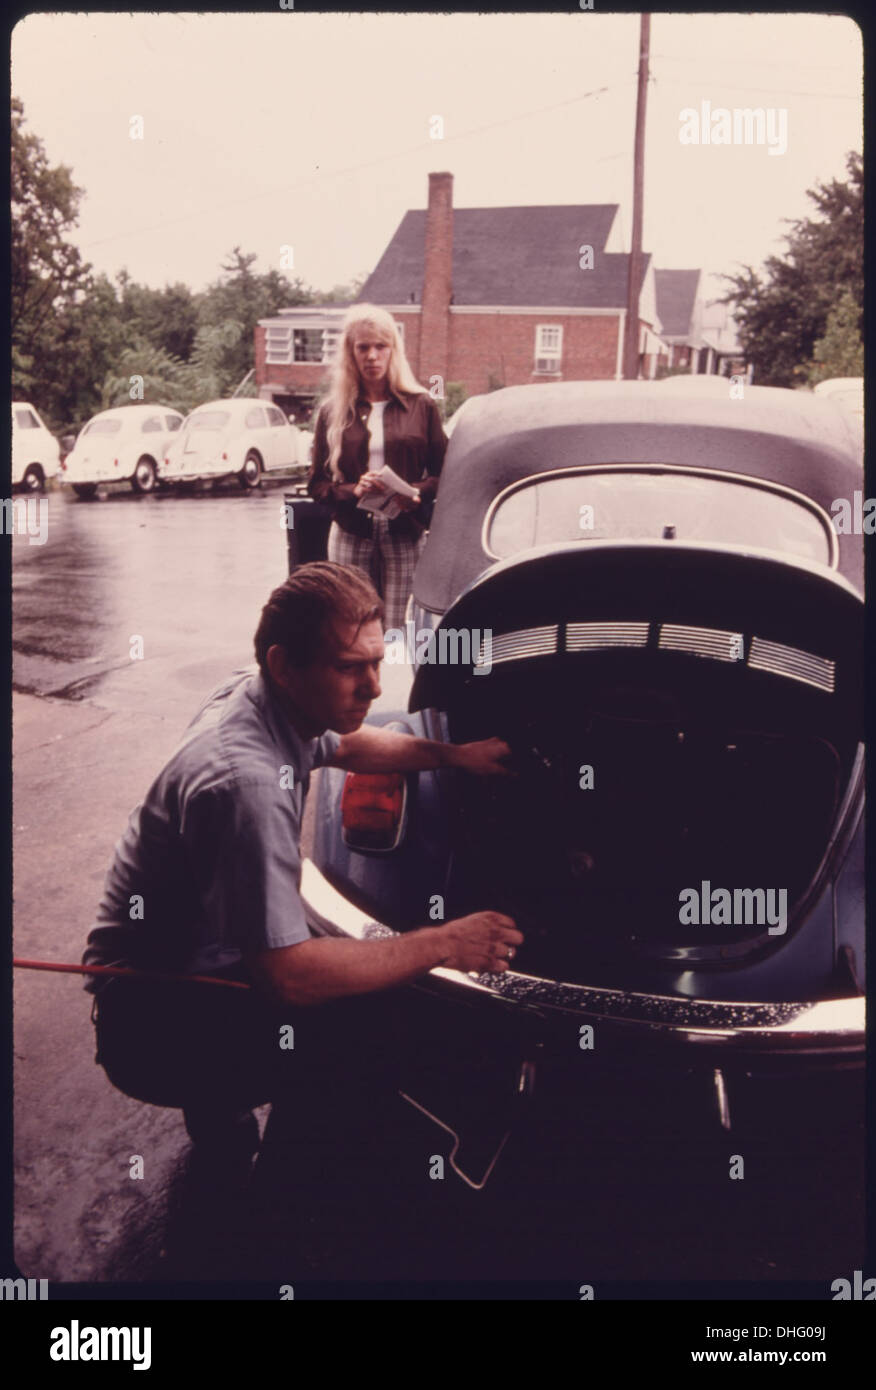 SERVICE STATION MECHANIC ADJUSTS THE ENGINE FOR A YOUNG